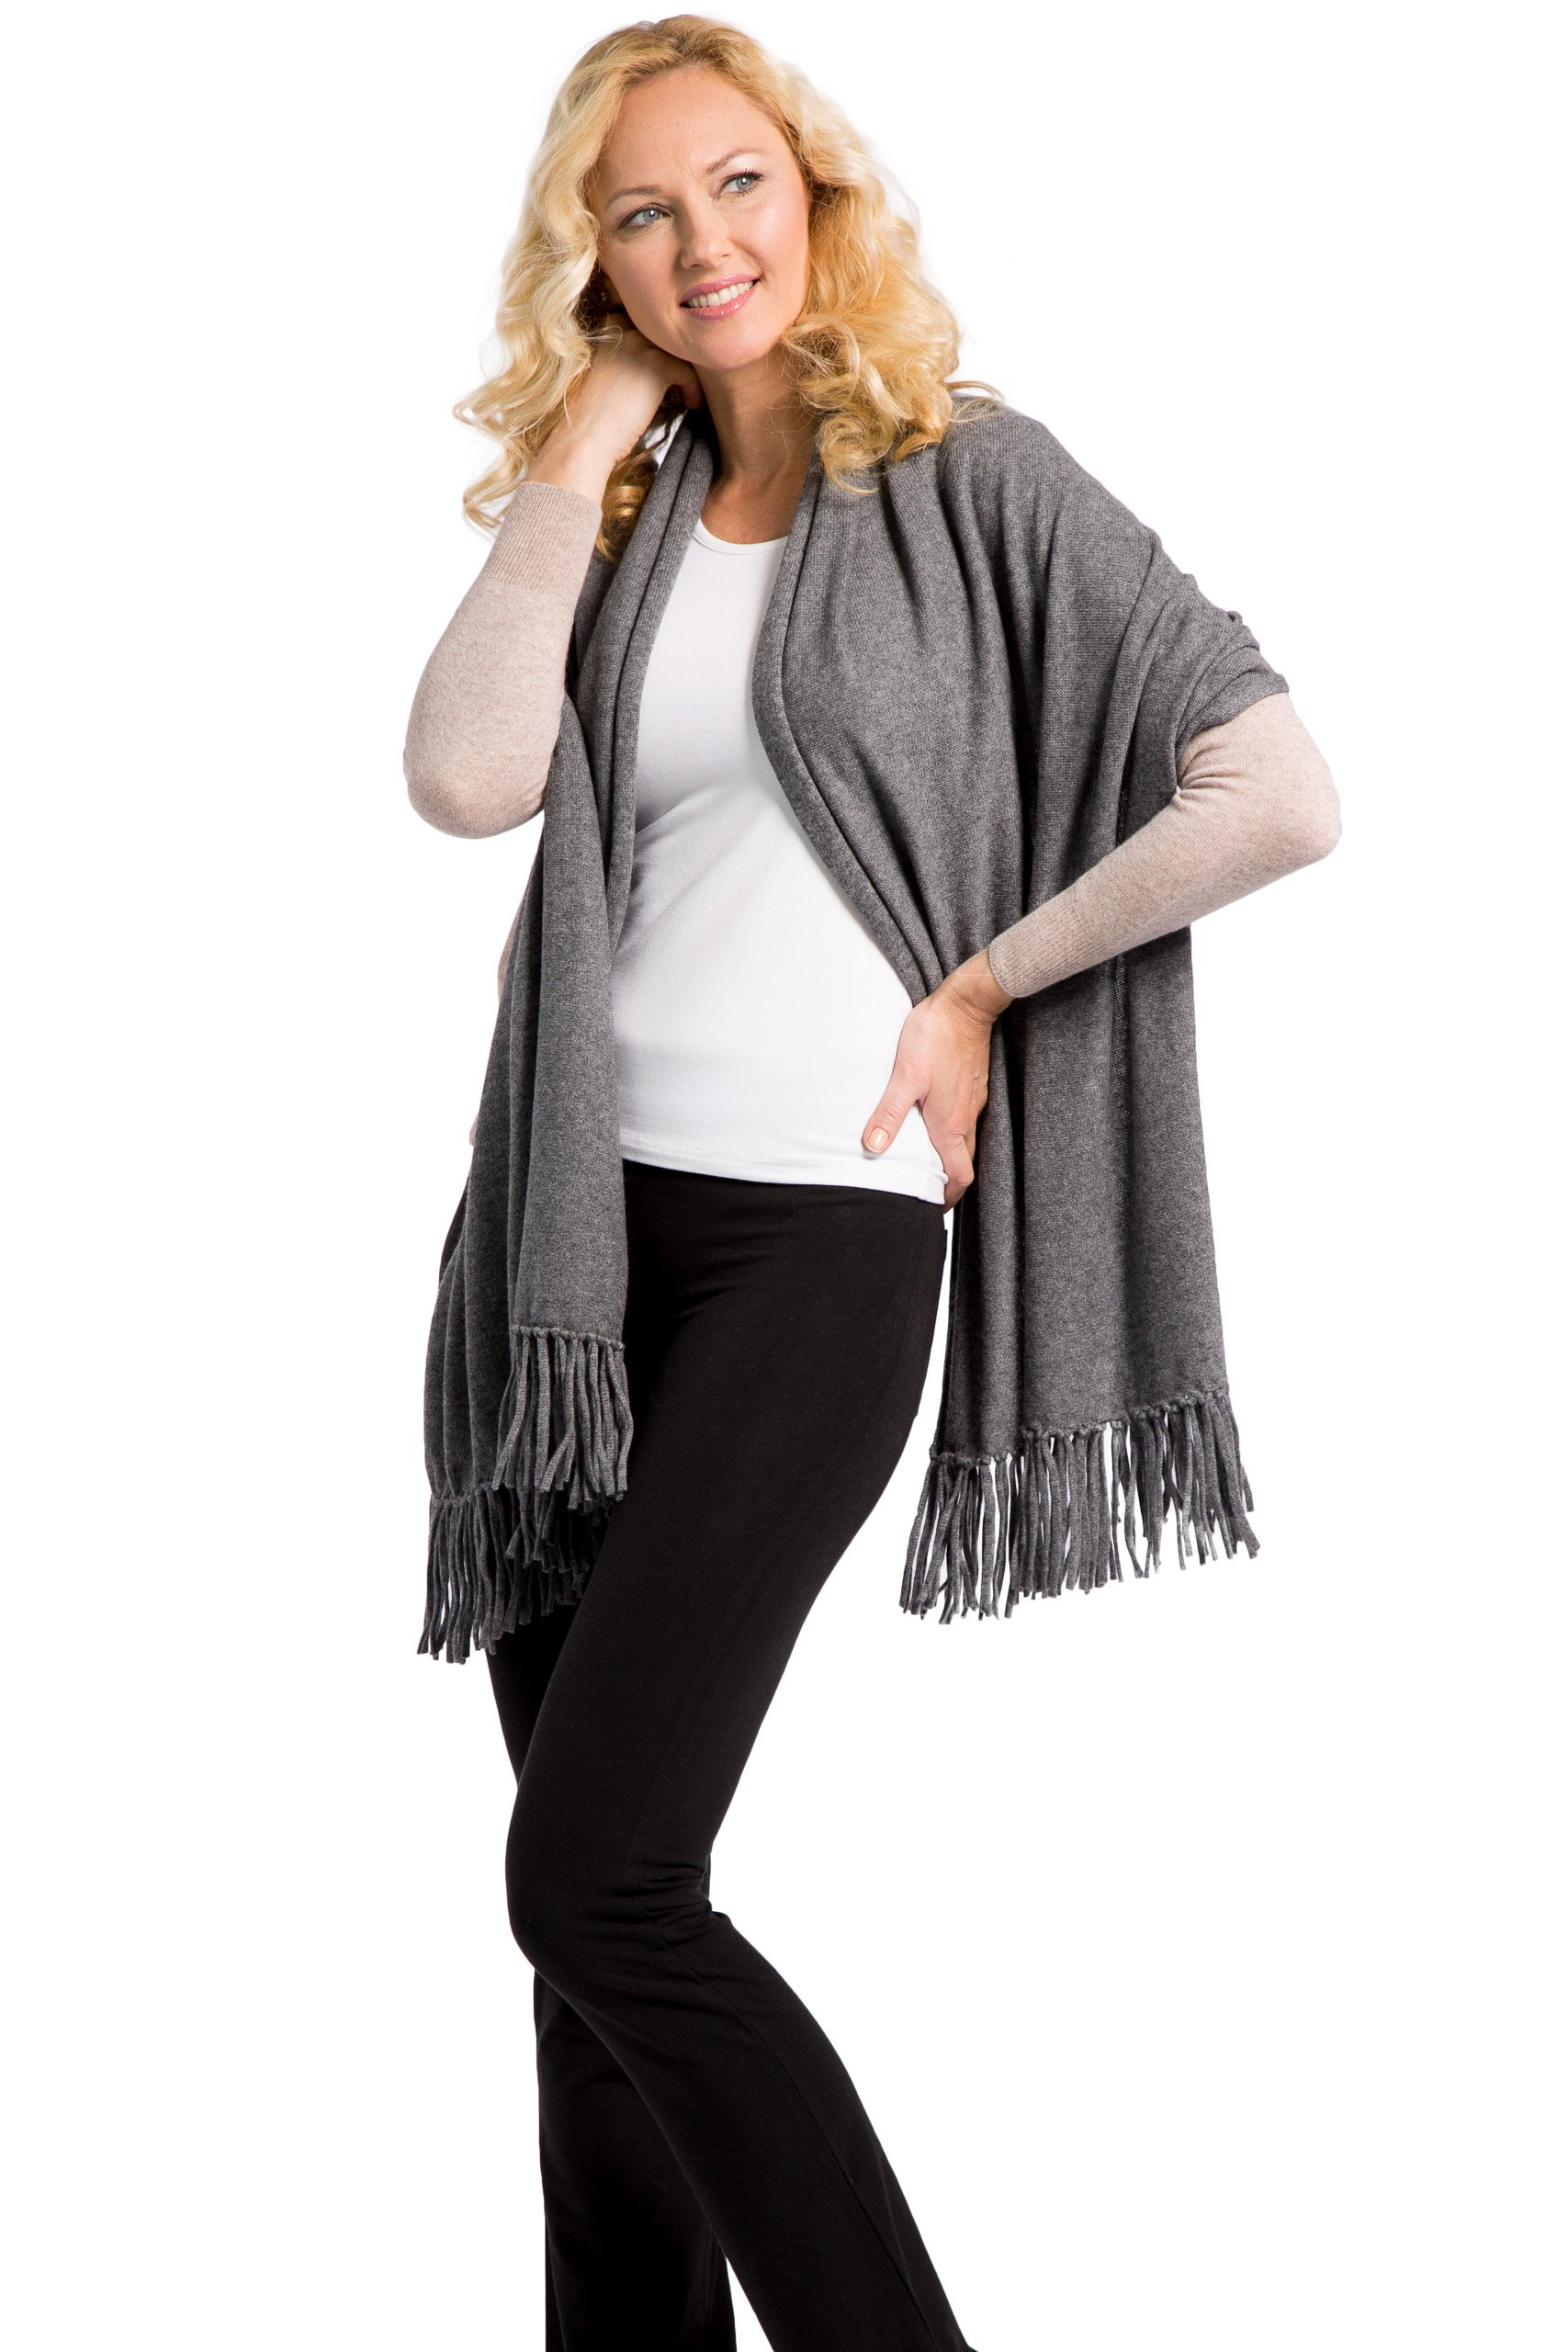 Fishers Finery Women's 100% Cashmere Knit Scarf with Fringe (Iron Gate)